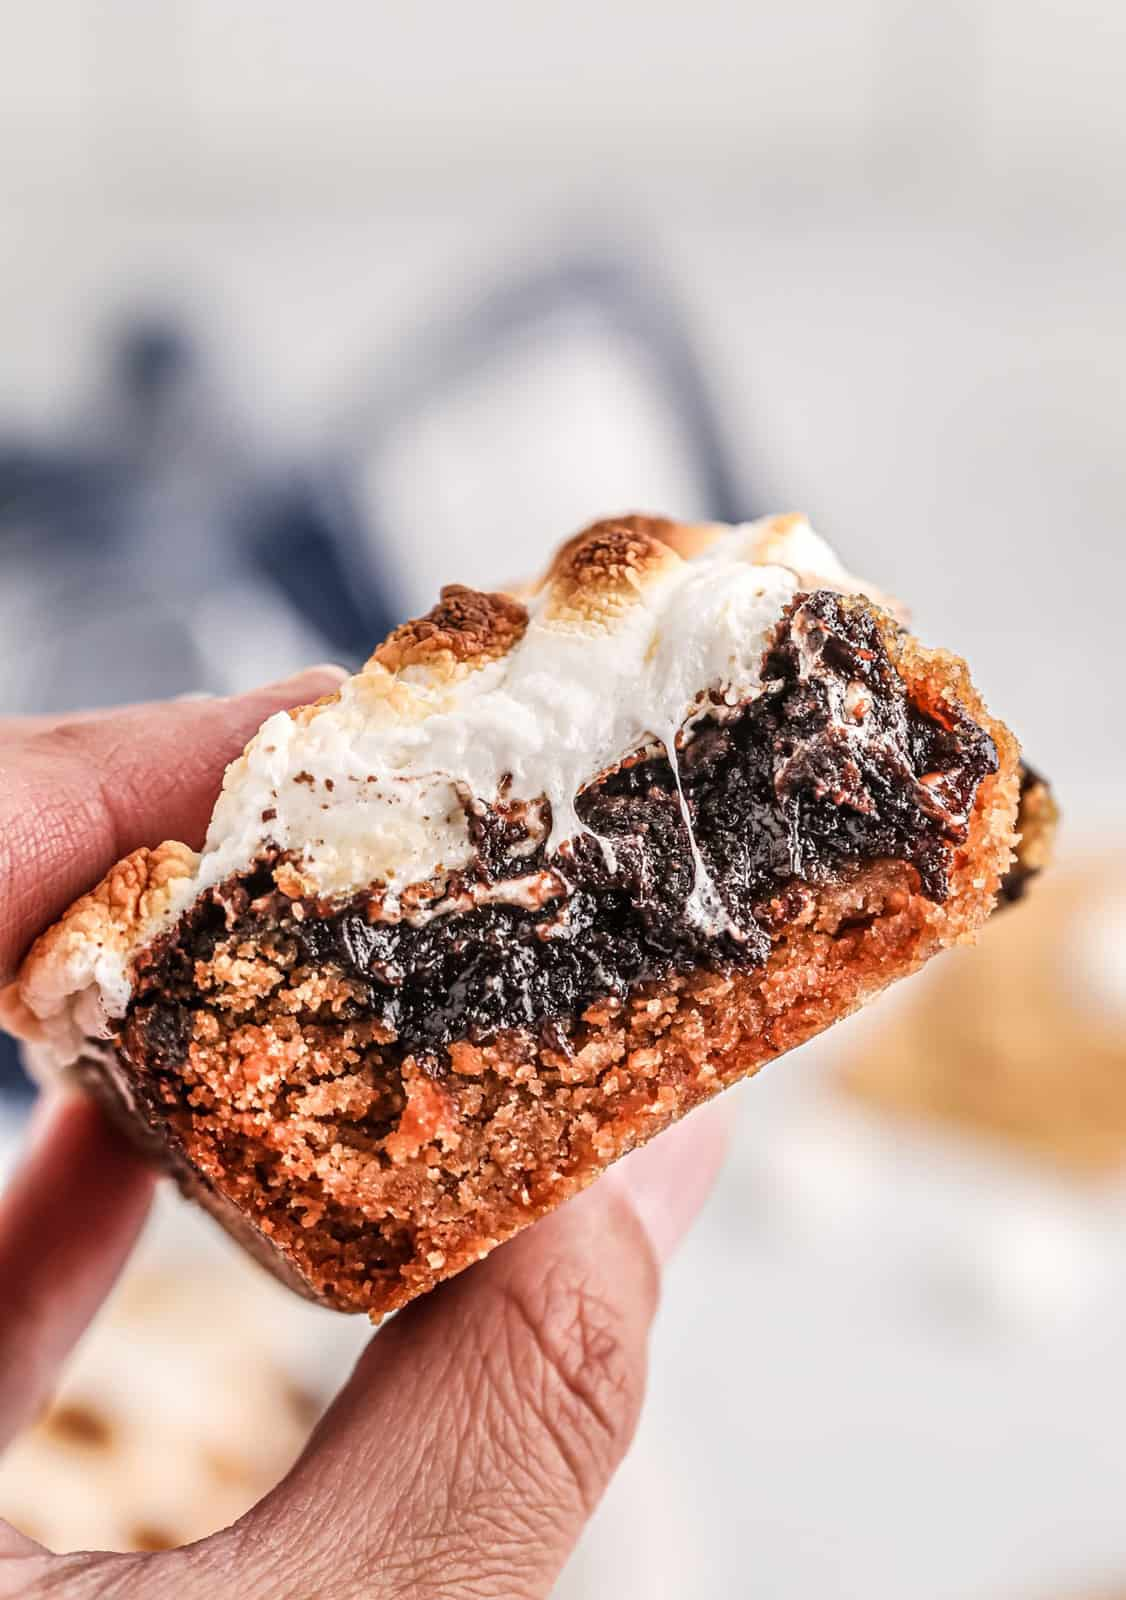 Hand holding up one S'mores Bar Recipe showing layers